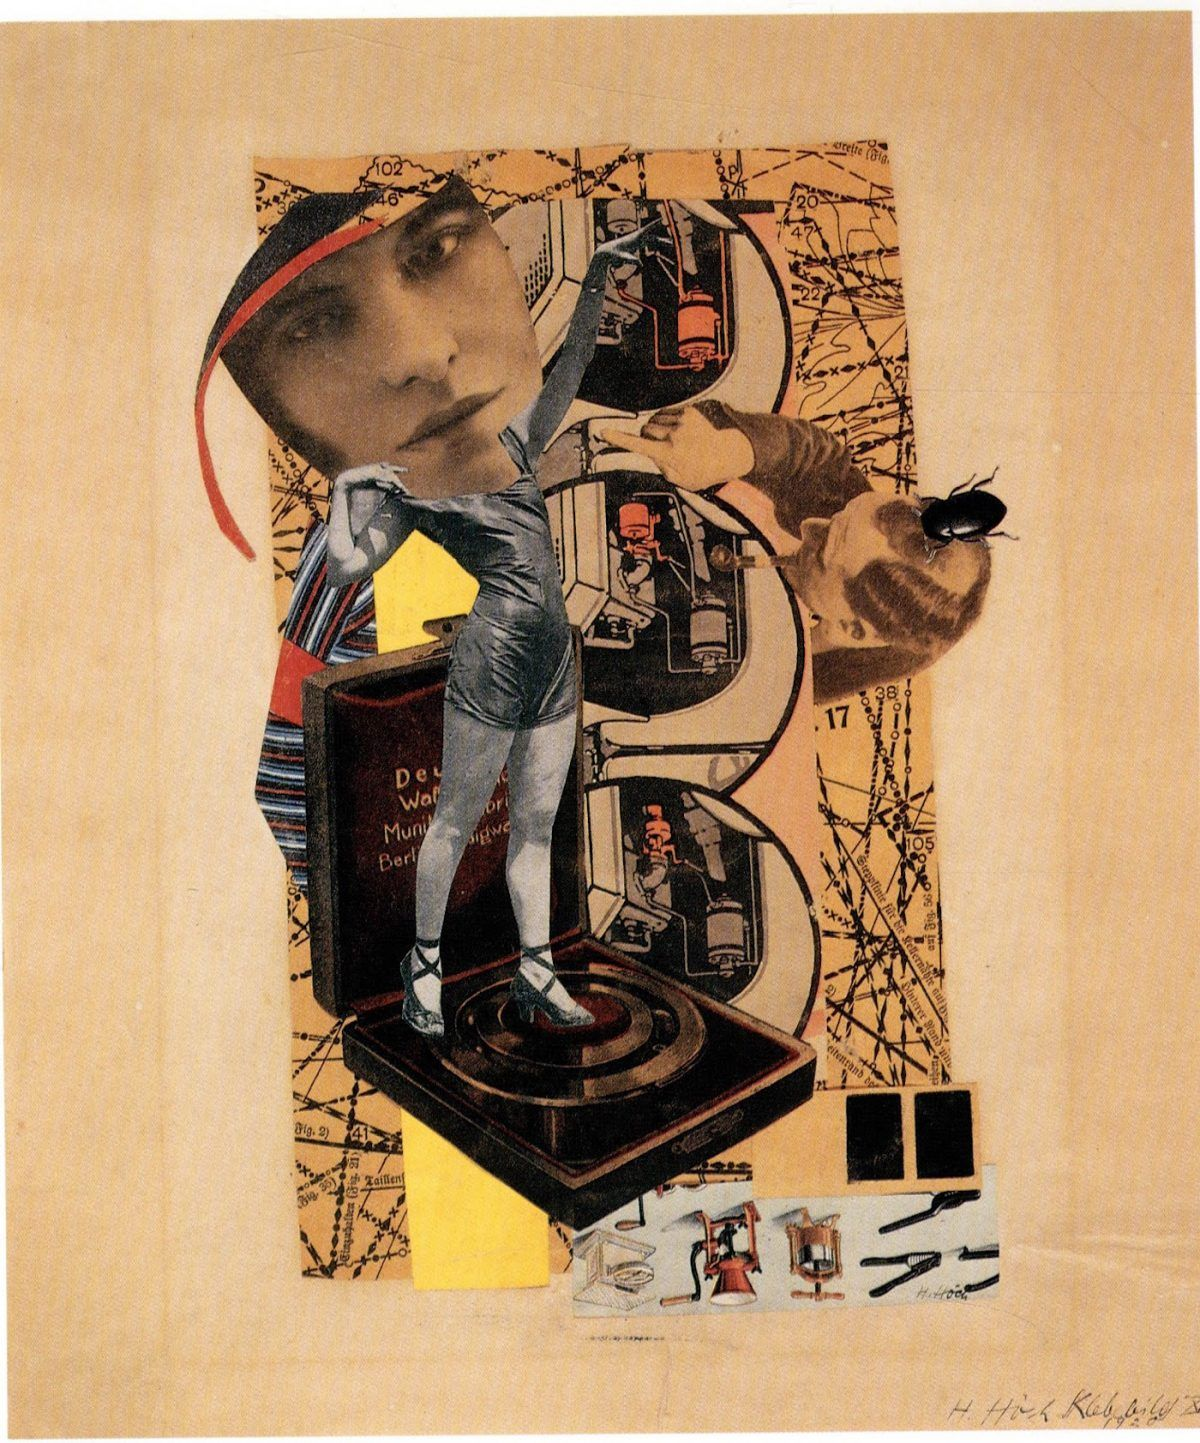 Hannah Höch, The Artist Who Wanted 'to show the world today as an ant sees it and tomorrow as the moon sees it' - Flashbak